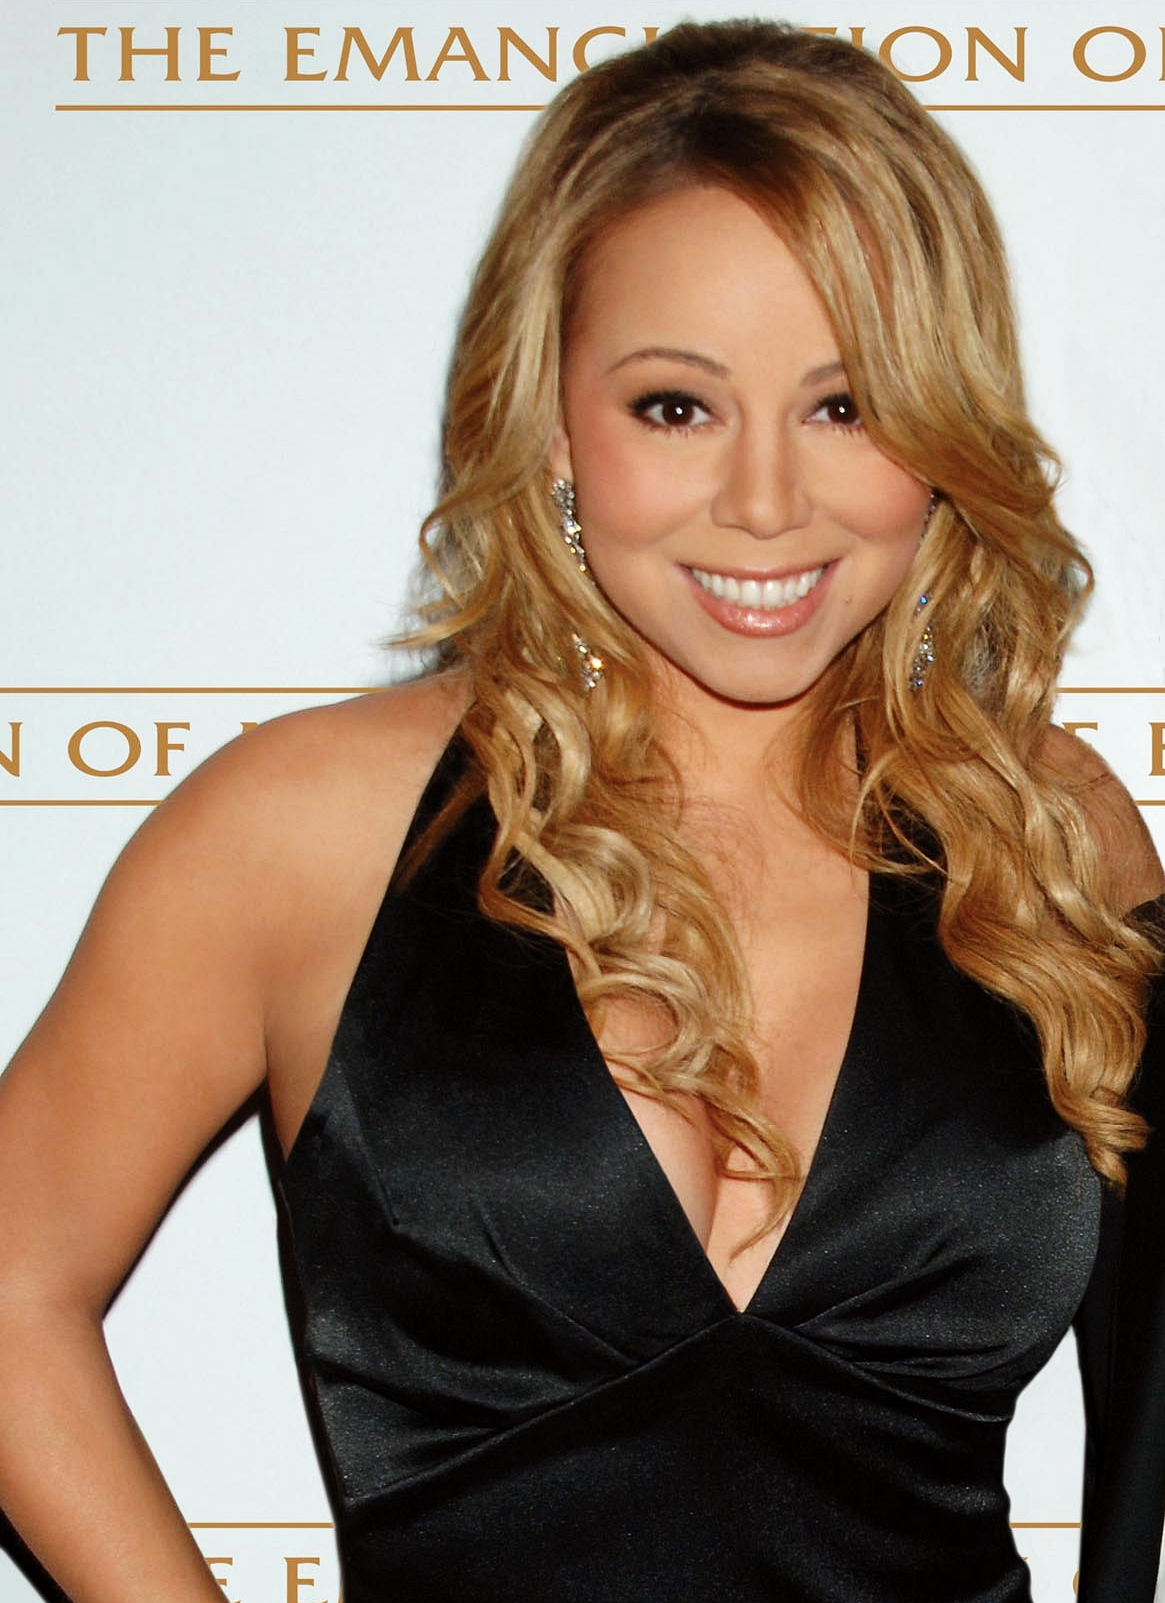 IS MARIAH CAREY GOING TO BE OKAY?